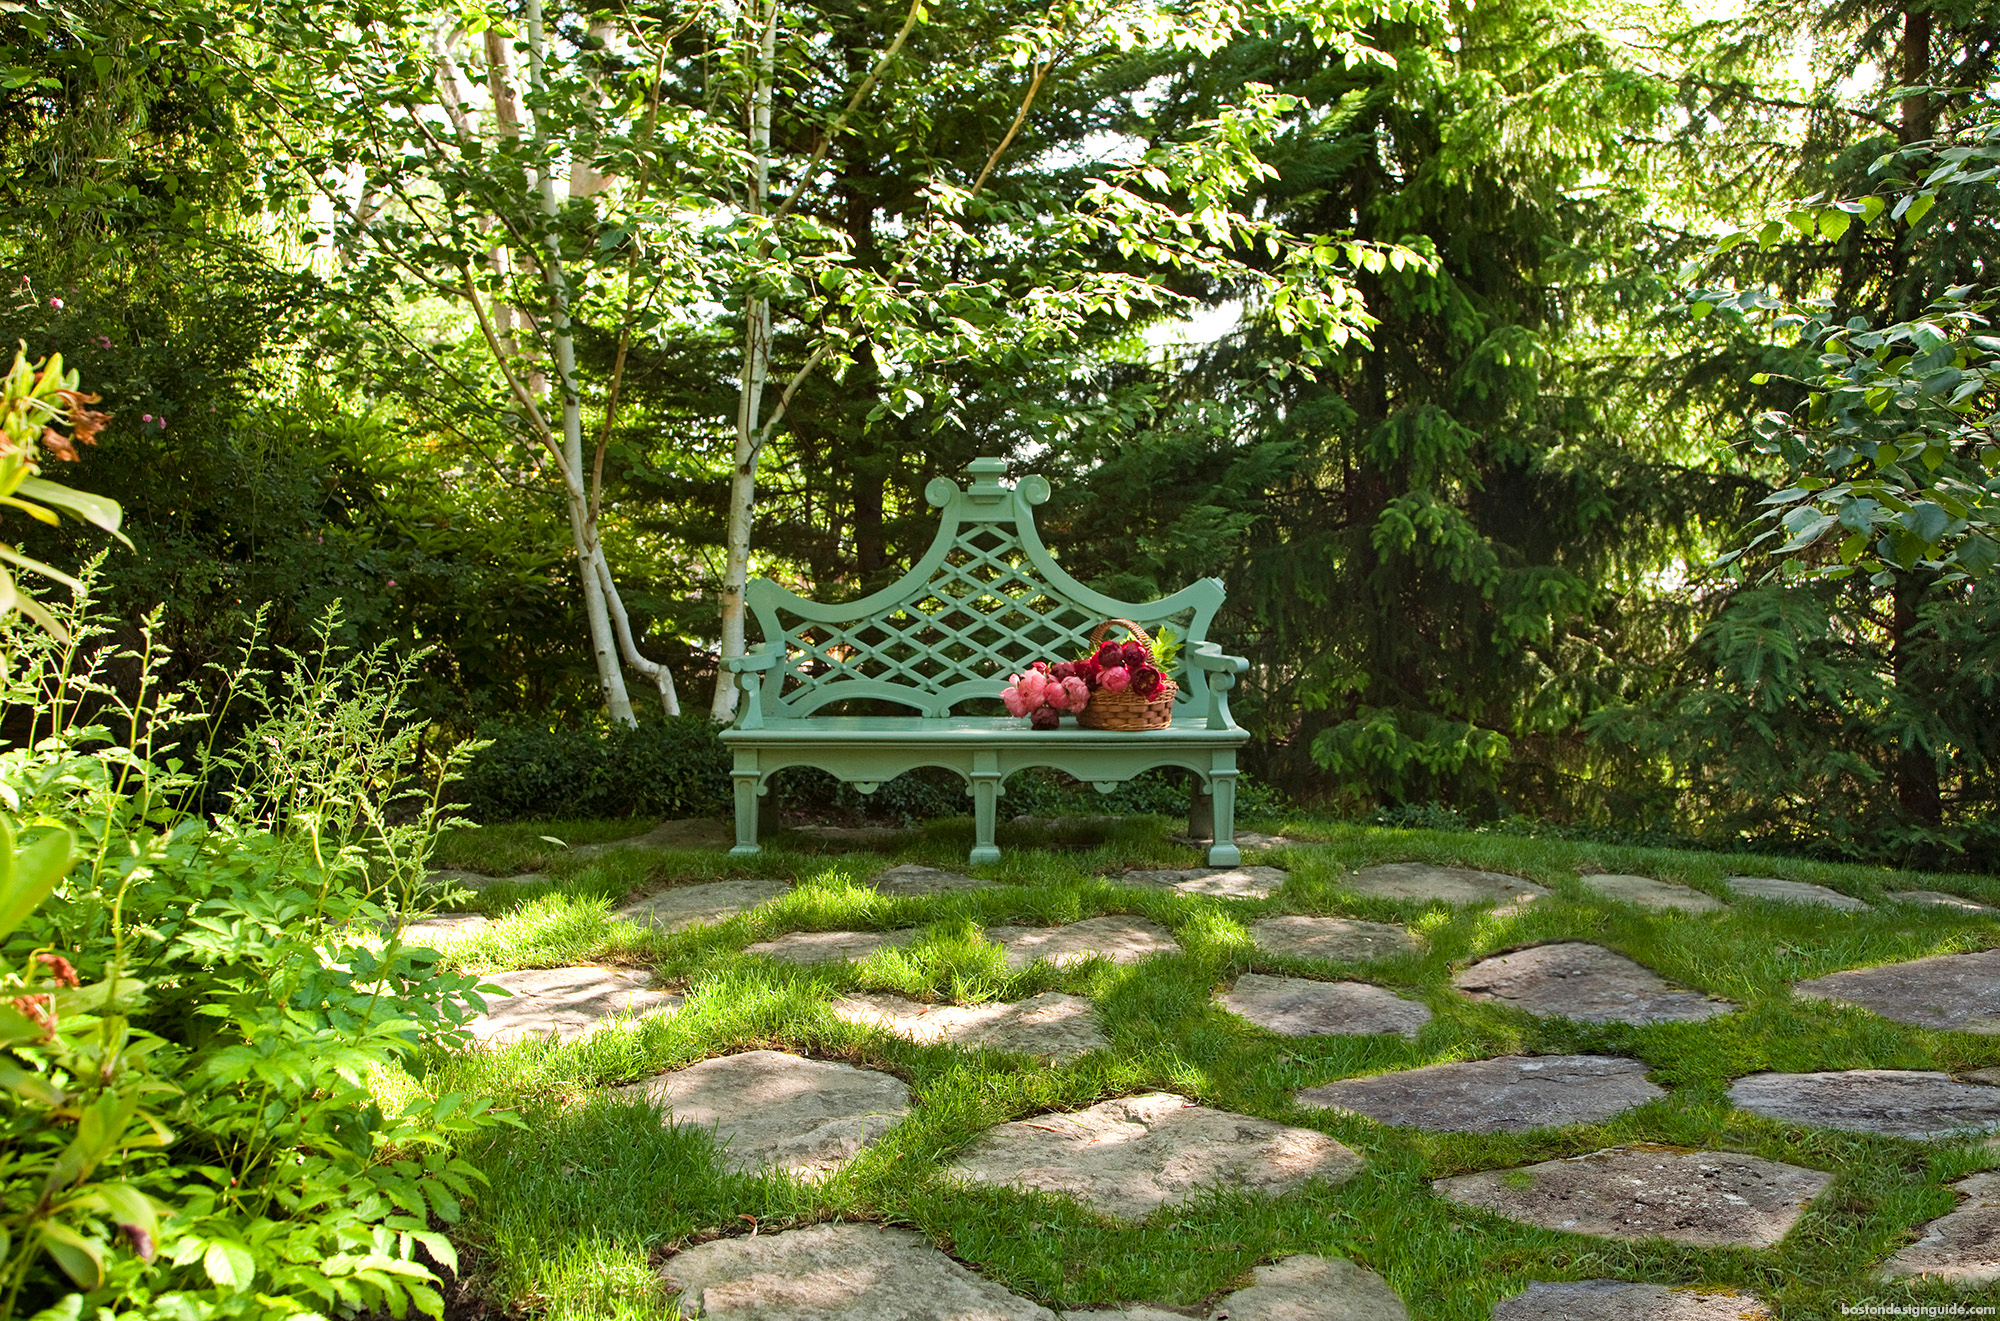 Landscape Design By Gregory Lombardi Design; Landscape Contractor R.P.  Marzilli U0026 Company; Photo By Eric Roth